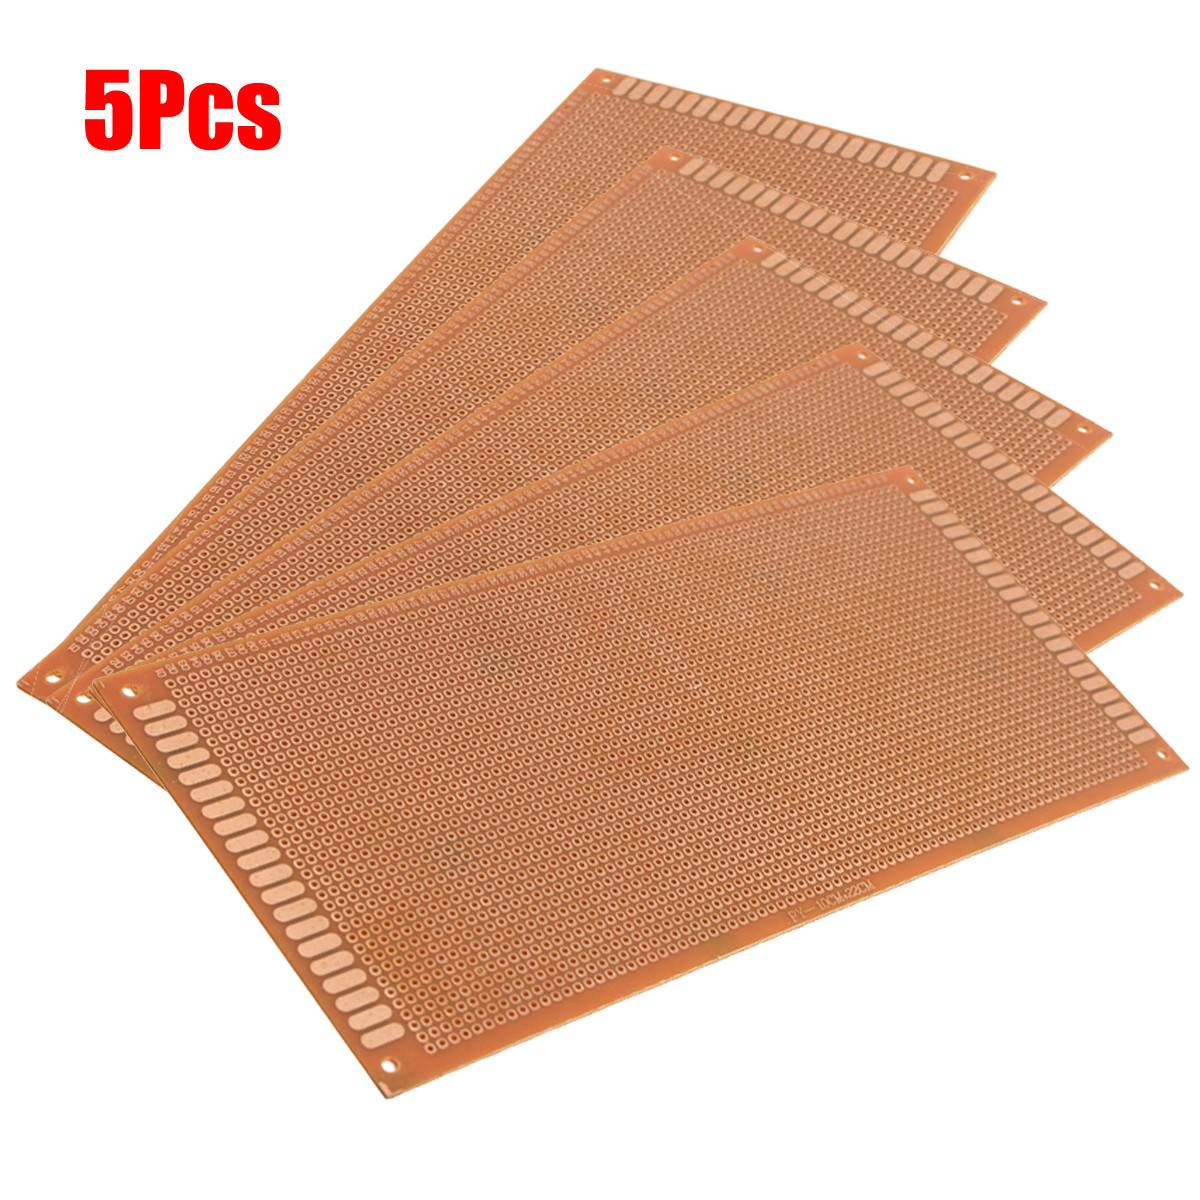 New Electric Unit 5pcs 10cm X 22cm Single Side Copper Prototyping Paper PCB Printed Circuit Board Prototype Breadboard #MK-6